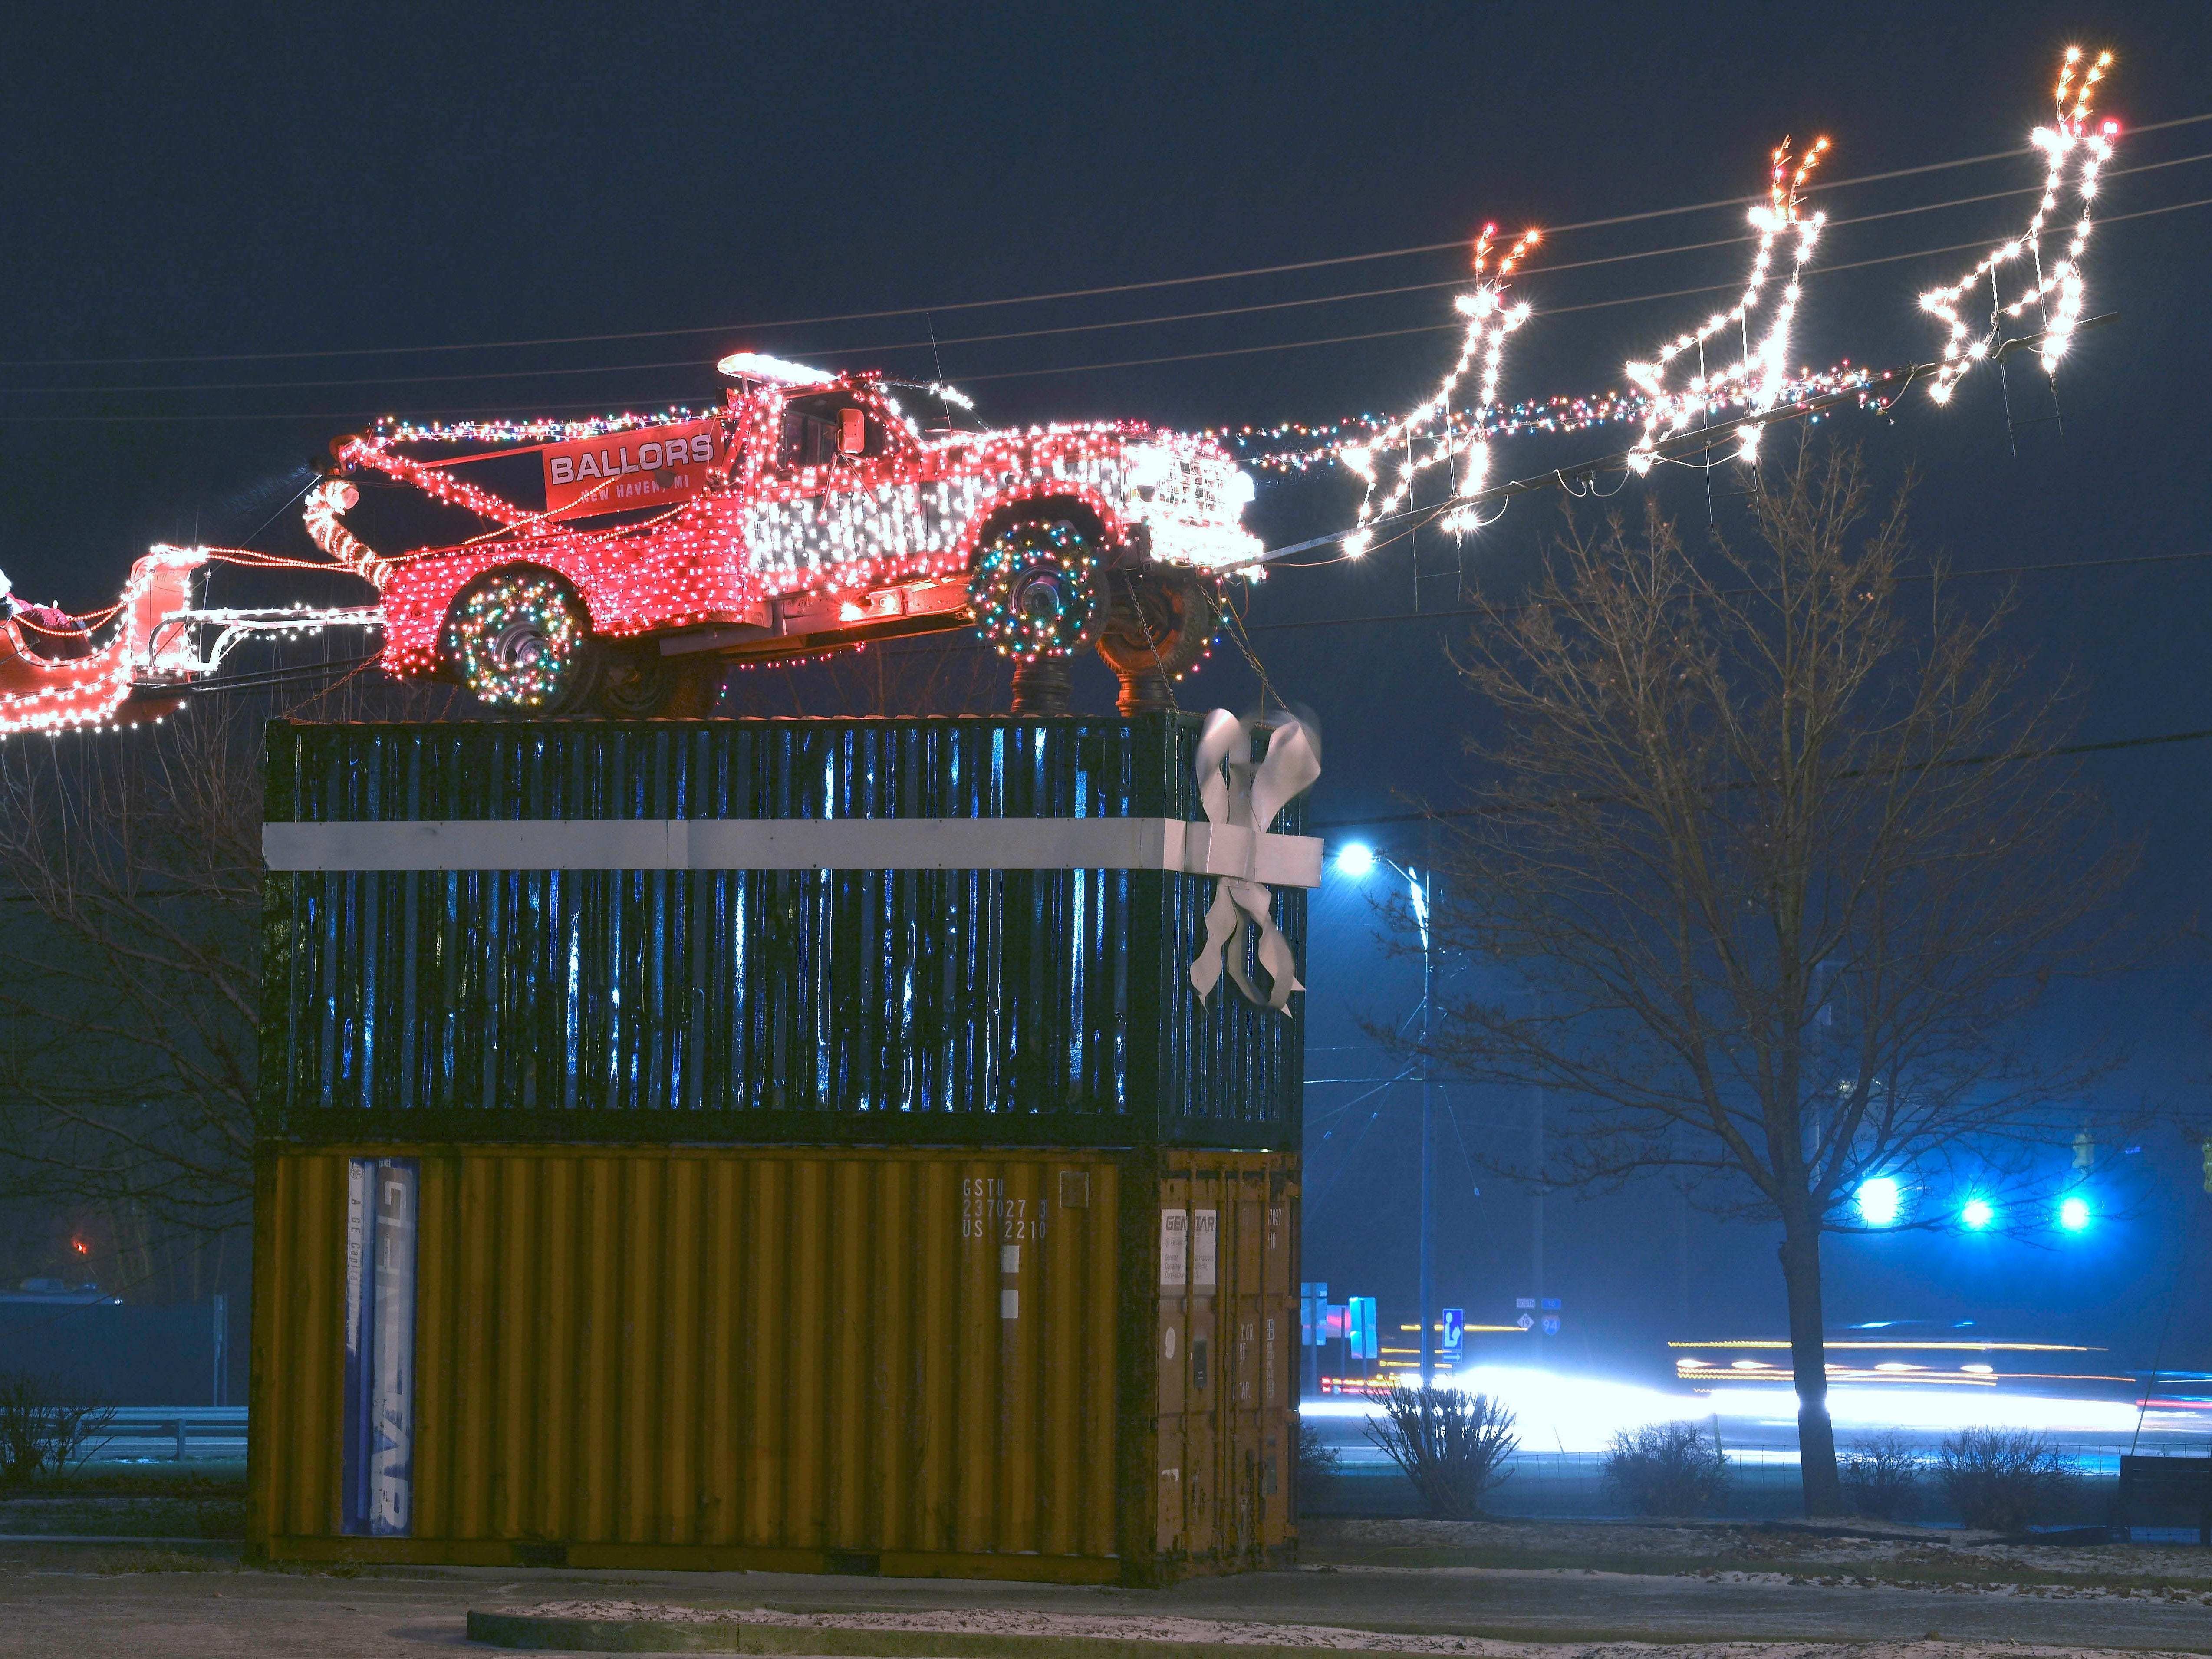 This late 1970s tow truck, with attached reindeer and Santa sitting in his sleigh, is decorated with Christmas lights 25 feet above the ground, sitting on two shipping containers at Joe Ballor Towing Inc. in New Haven, for at least the 10th year this holiday season. According to third generation owner Joel Ballor, the family decided to display the Christmas decoration out of respect for his grandparents, Joe and Elizabeth Ballor, who founded the company in 1939 across the street.